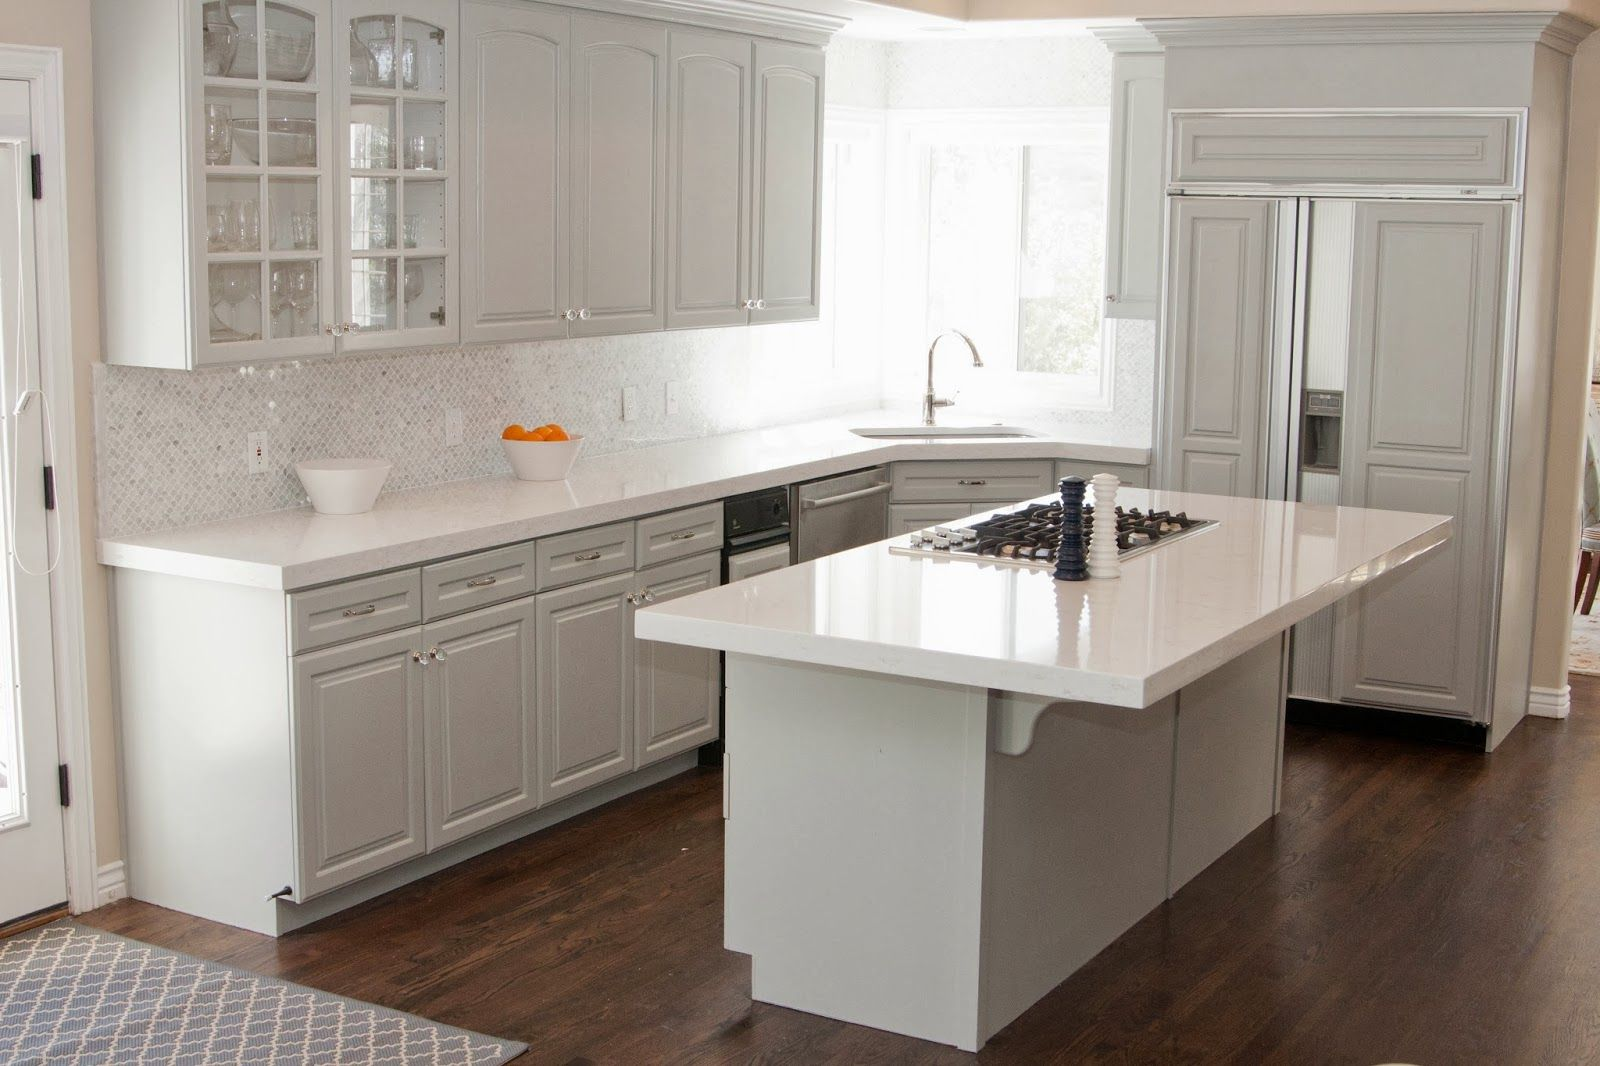 White Laminate Kitchen Cabinet Doors Ideas For Modern Kitchen Design Inspiration Classic White Kitchen Kitchen Furnishings Light Grey Kitchen Cabinets